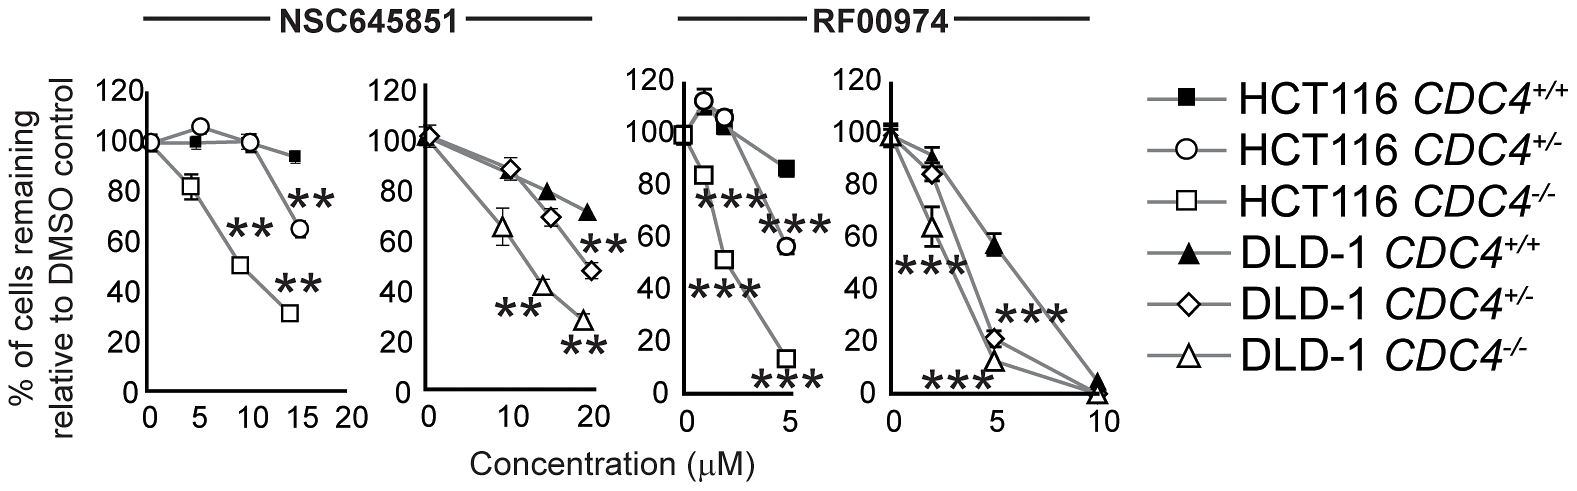 NSC645851 and RF00974 selectively inhibit the proliferation of HCT116 and DLD-1 cells with both homozygous and heterozygous inactivating mutations of <i>CDC4</i>.